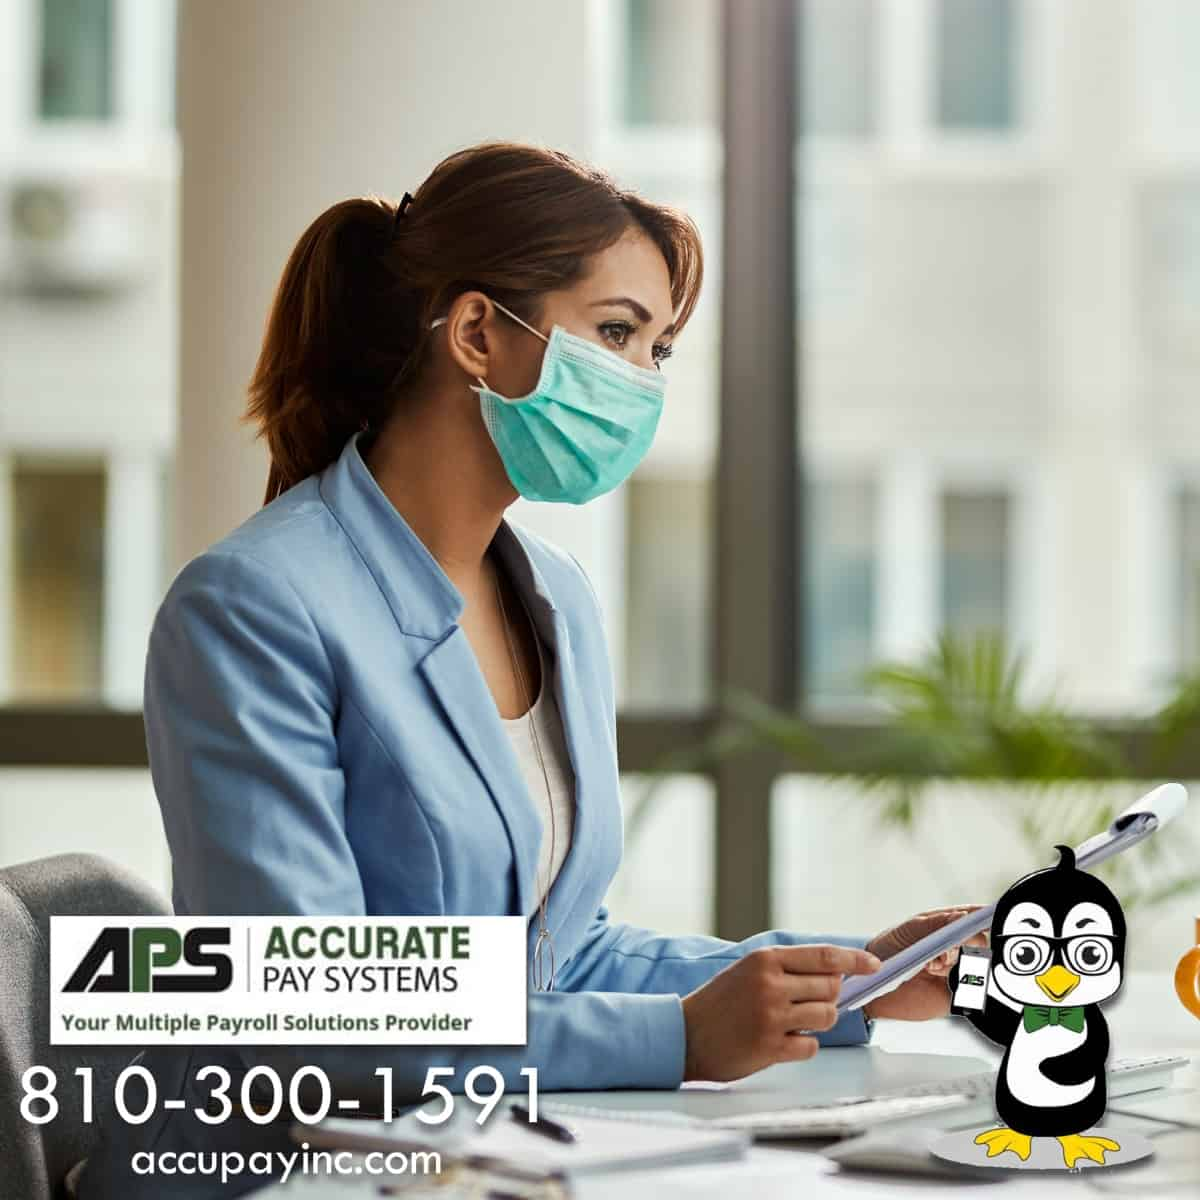 Business owner wearing PPE mask